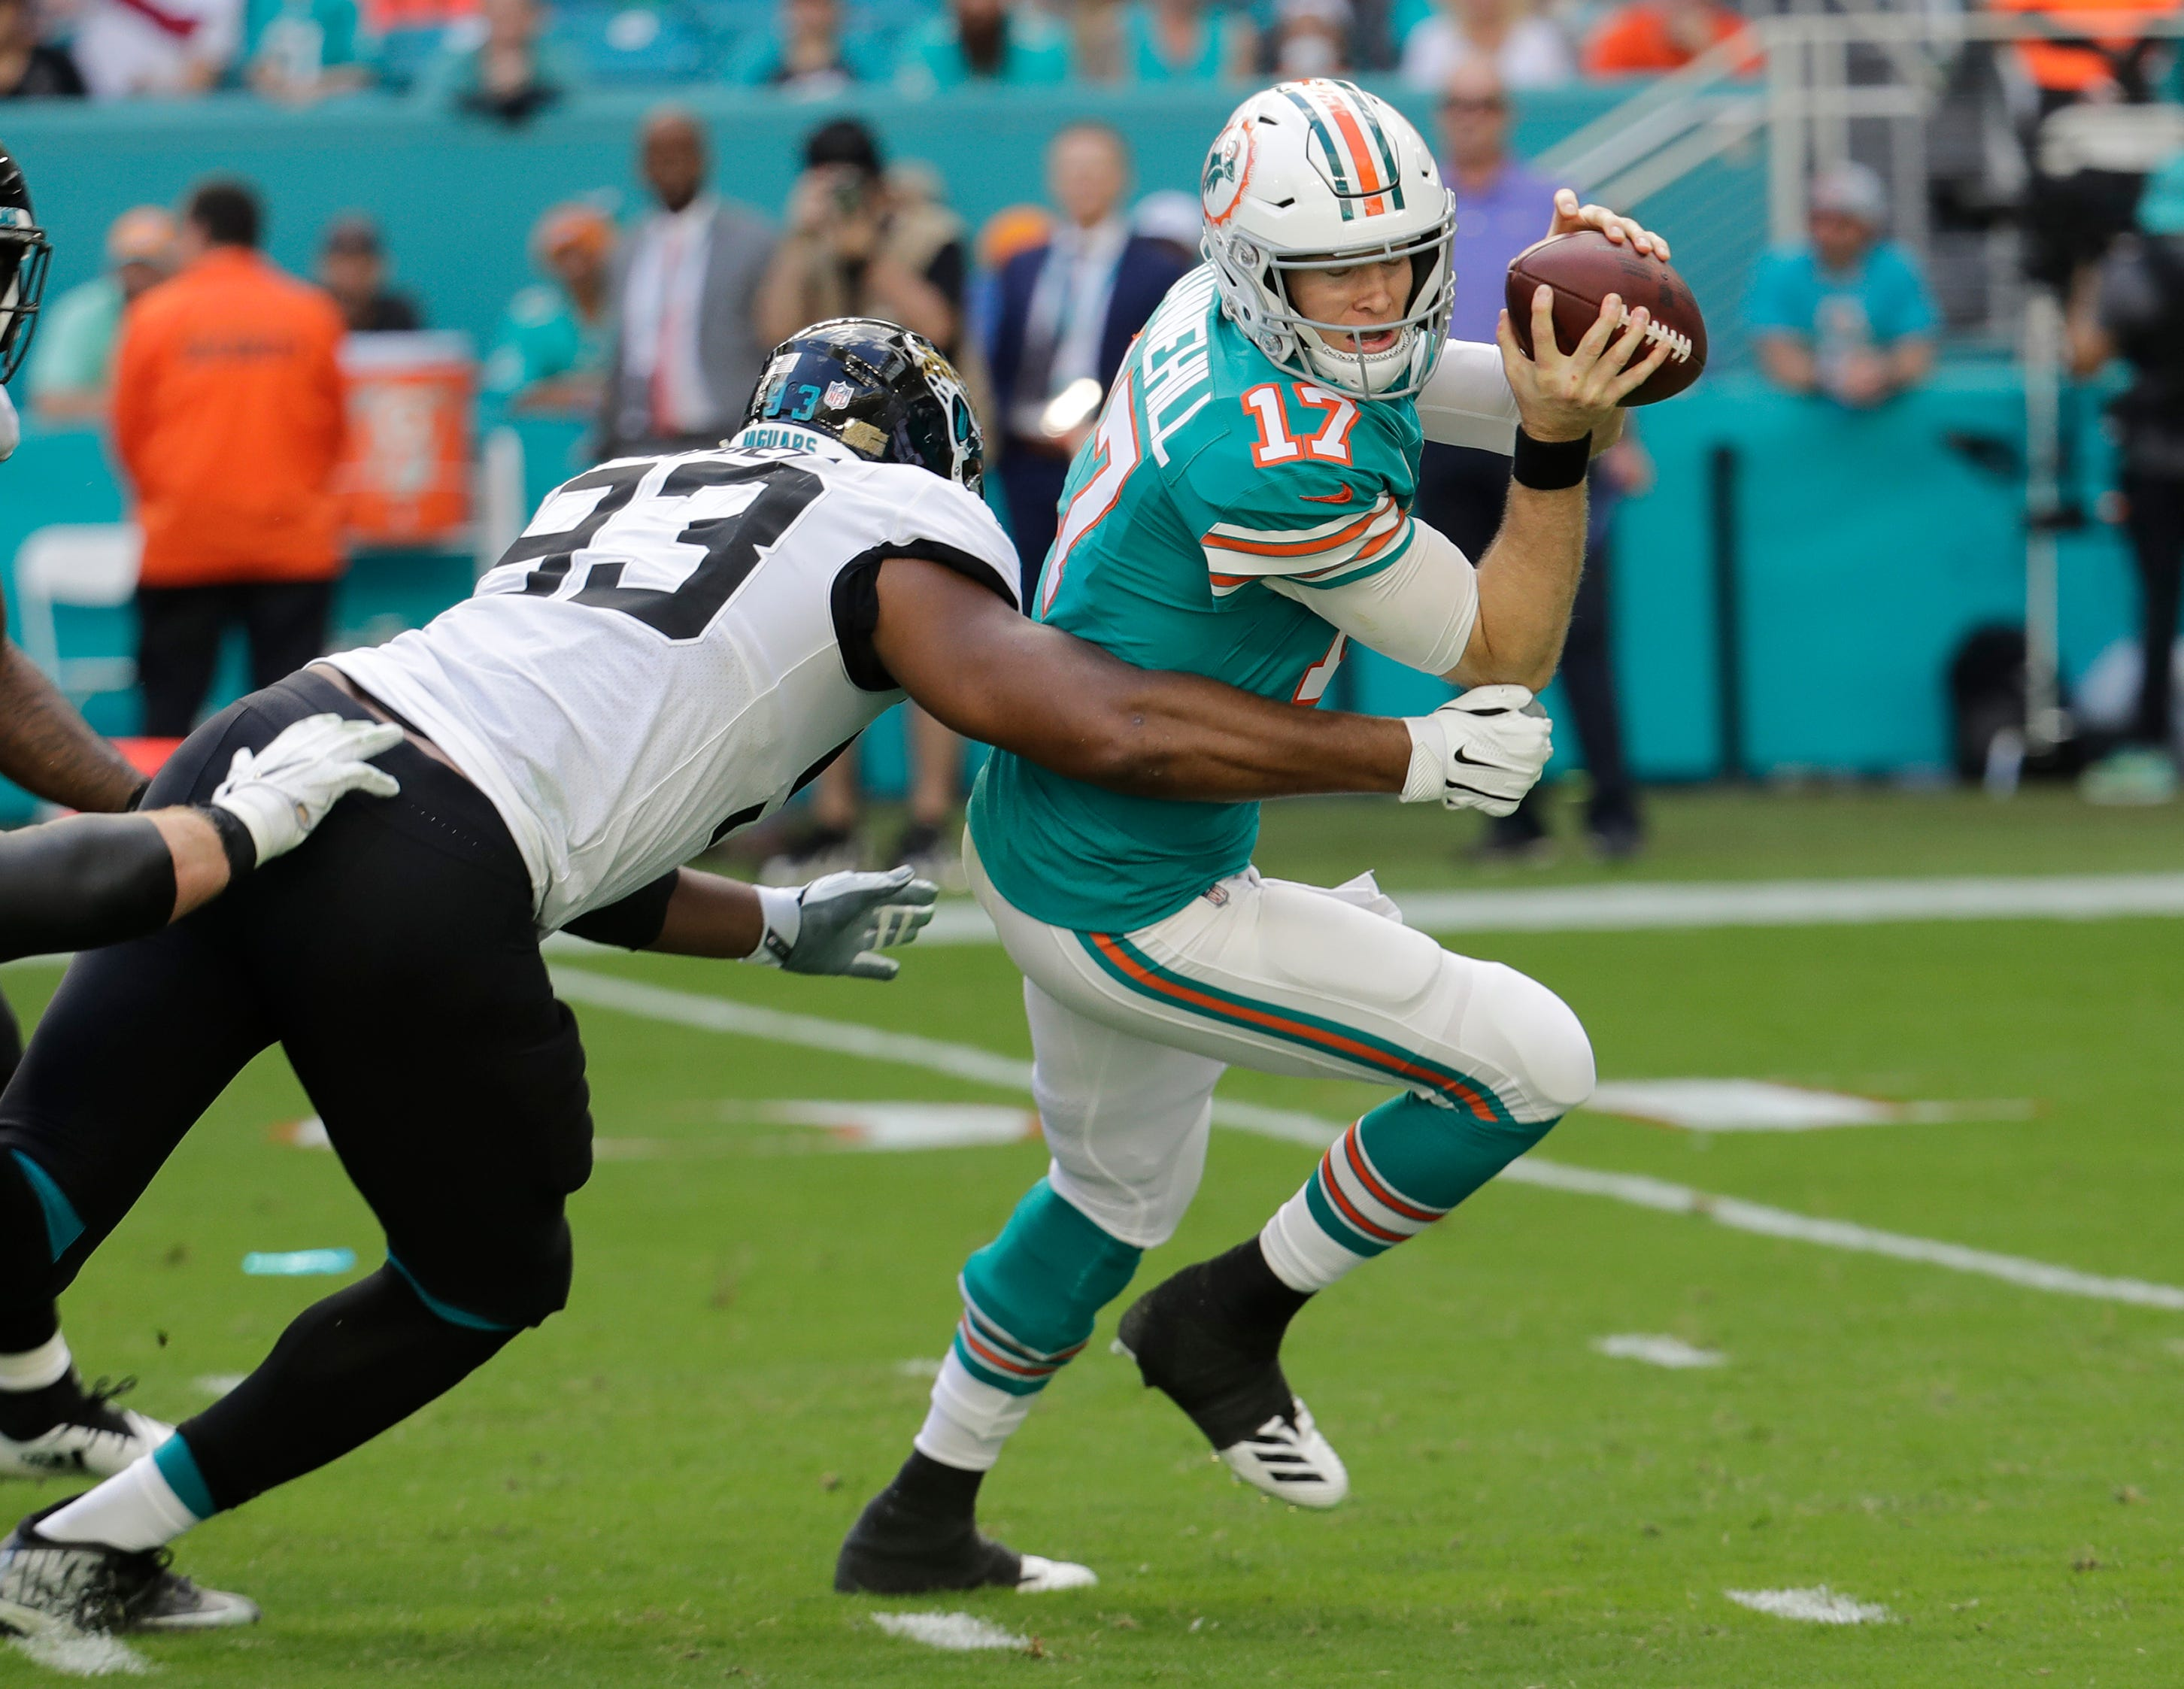 Bills QB Allen seeks better finish in rematch against Miami